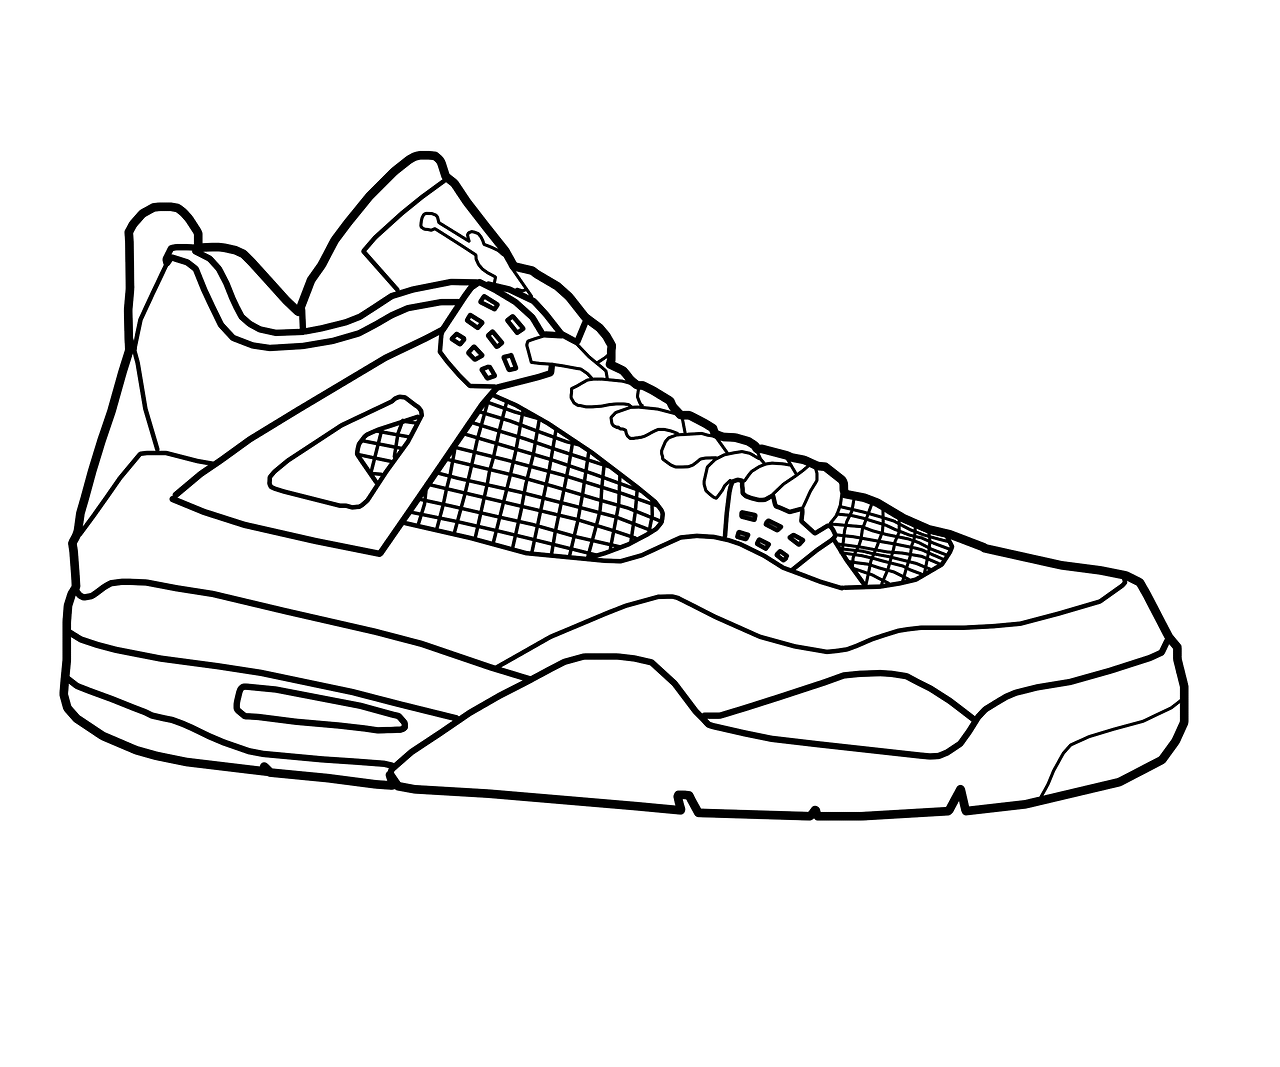 jordan coloring pages for kids - photo#5